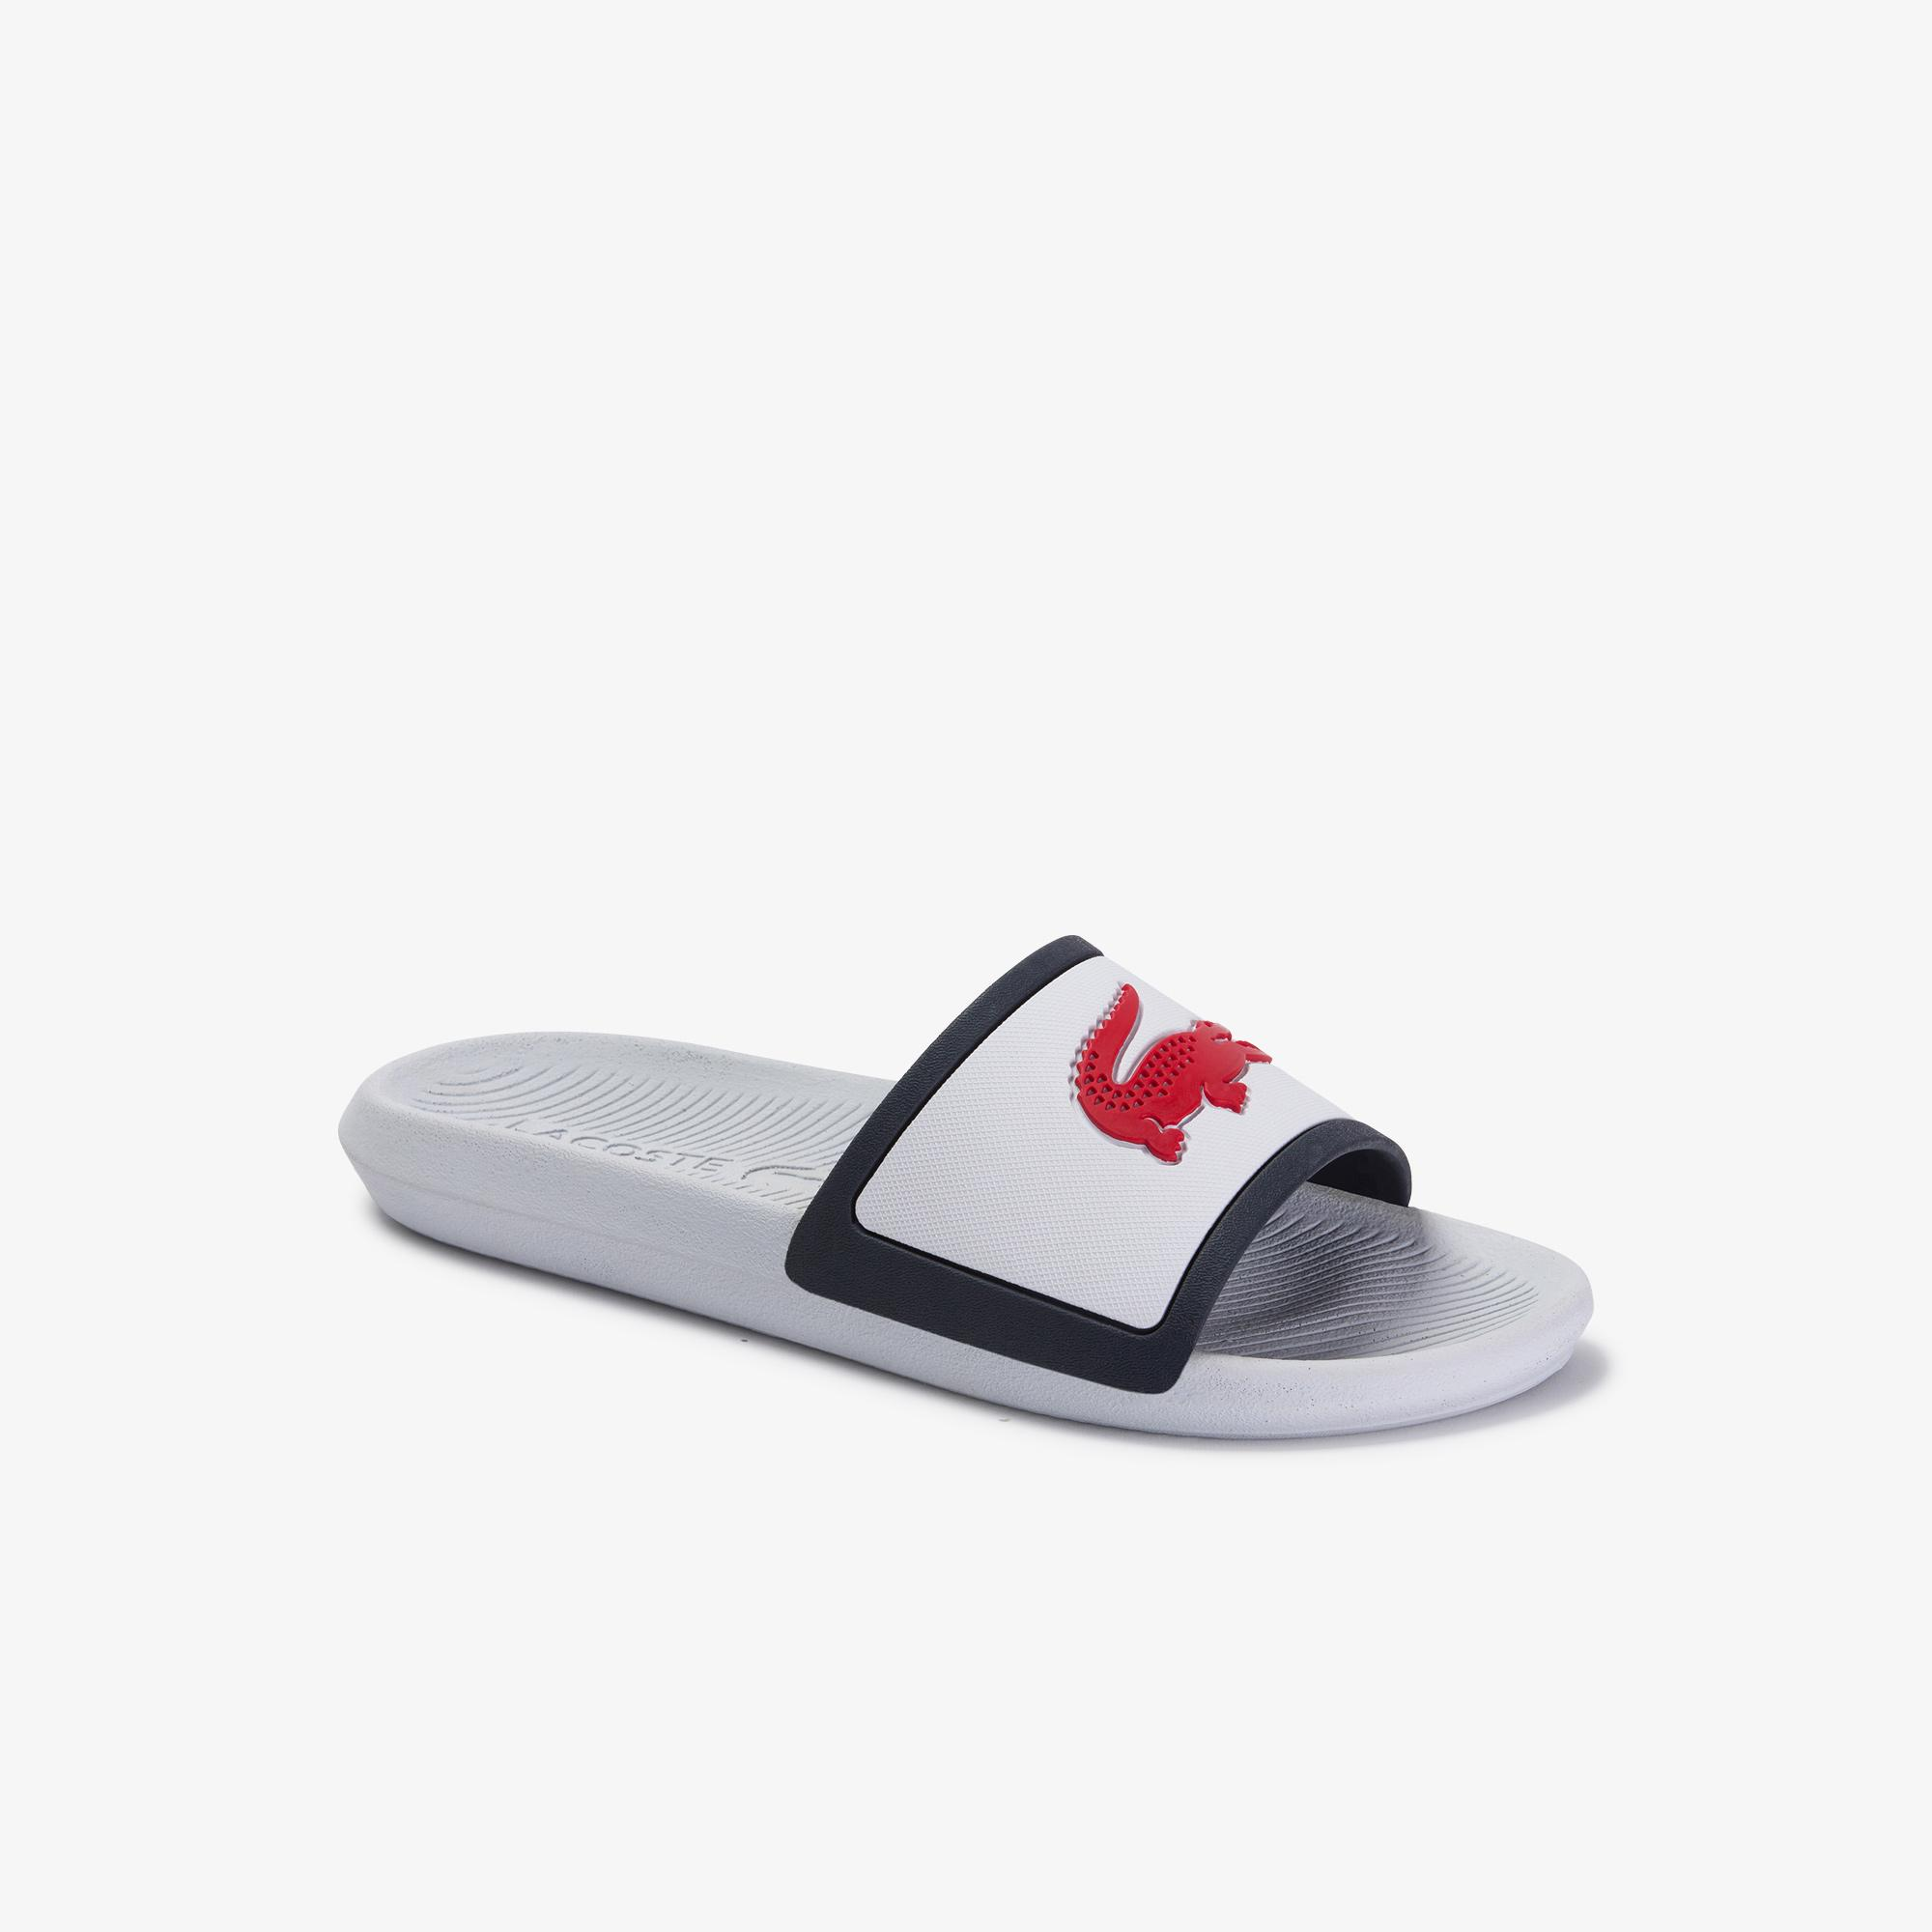 Lacoste Croco Slide Tri 3 Men's Slip-On